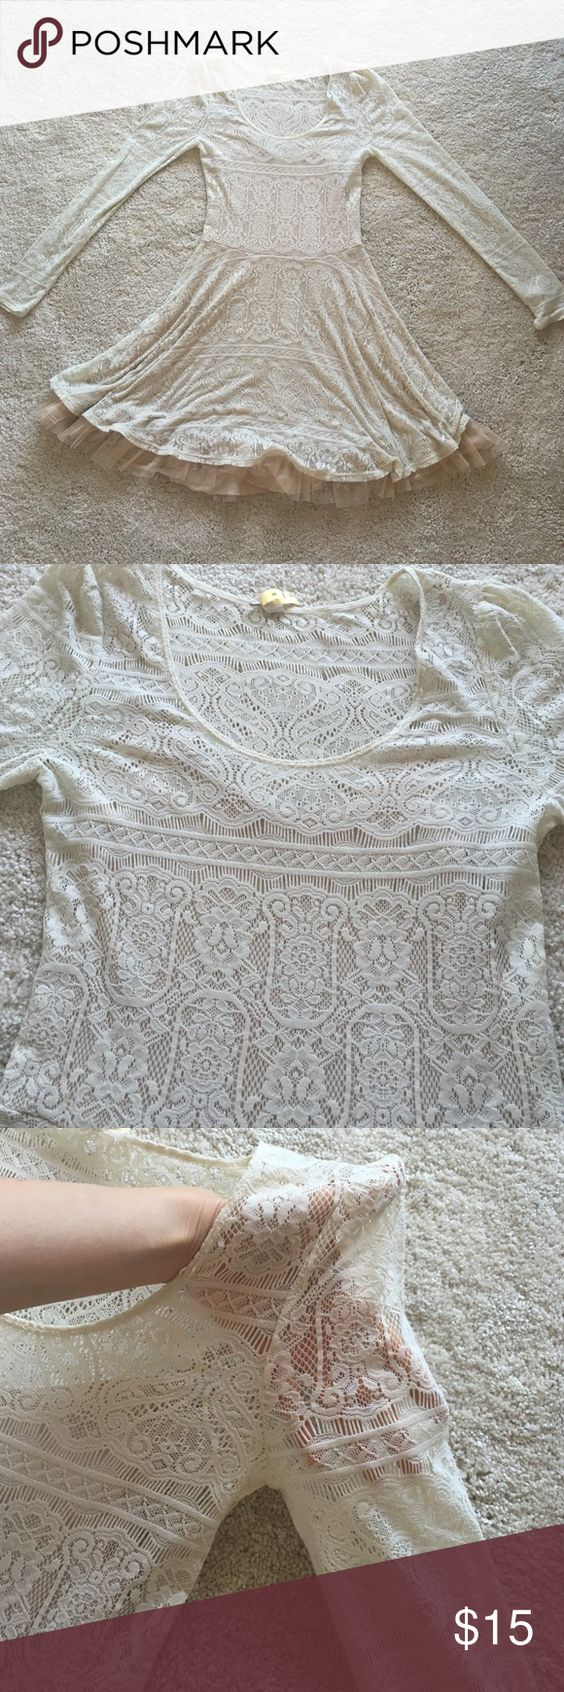 Free people tan lace dress Mini long sleeve dress with just the right amount of tulle on the skirt to make you feel like a princess but not over doing it. See pics Free People Dresses Mini